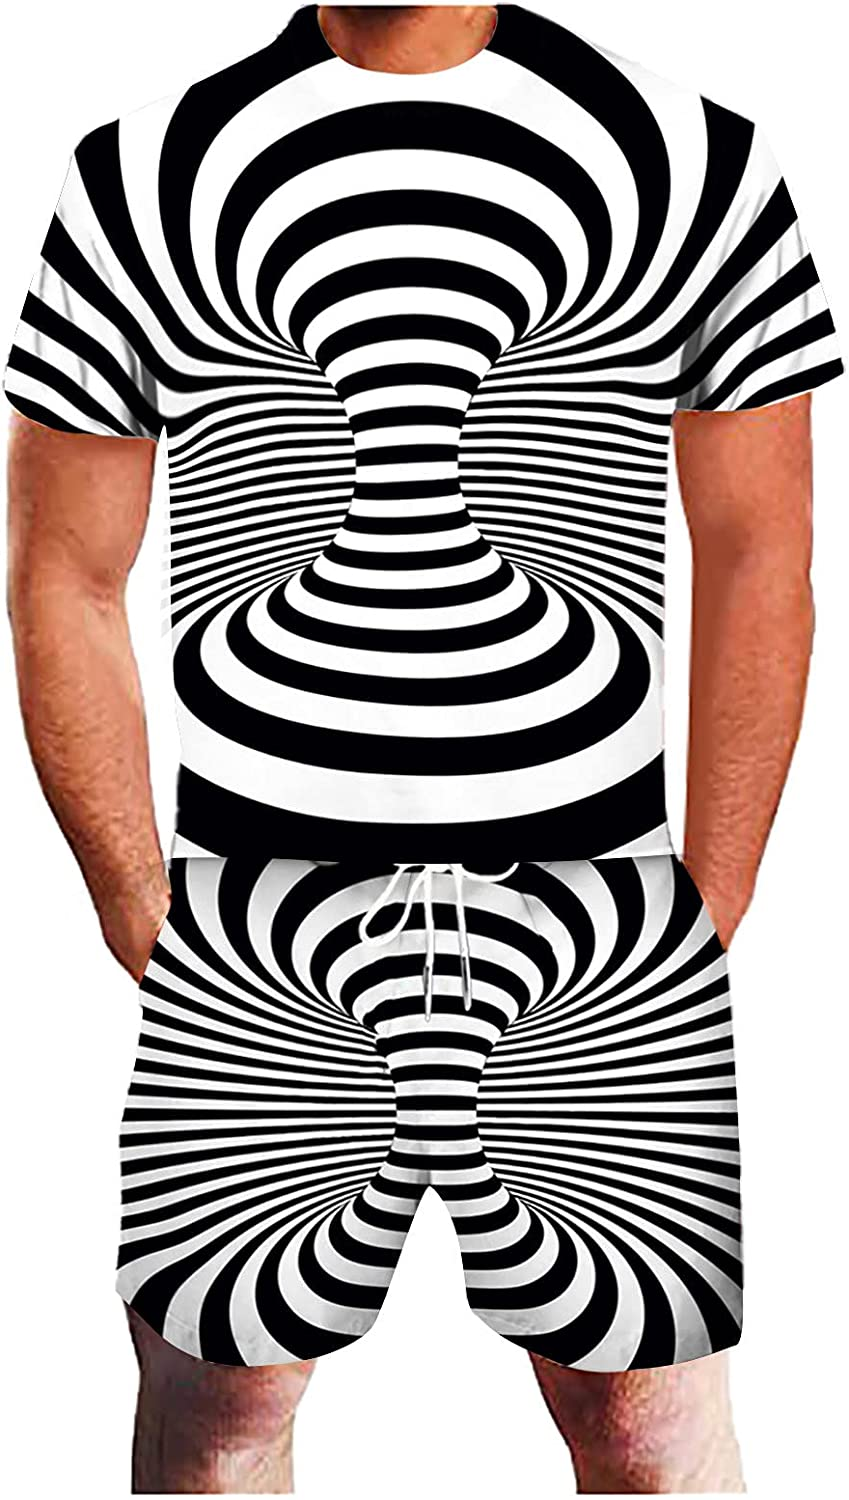 FUNEY Men's Summer Sports Suit Tracksuits for Men 2 Piece 3D Geometric Abstract Printed T-Shirt and Shorts Set Sweatsuits